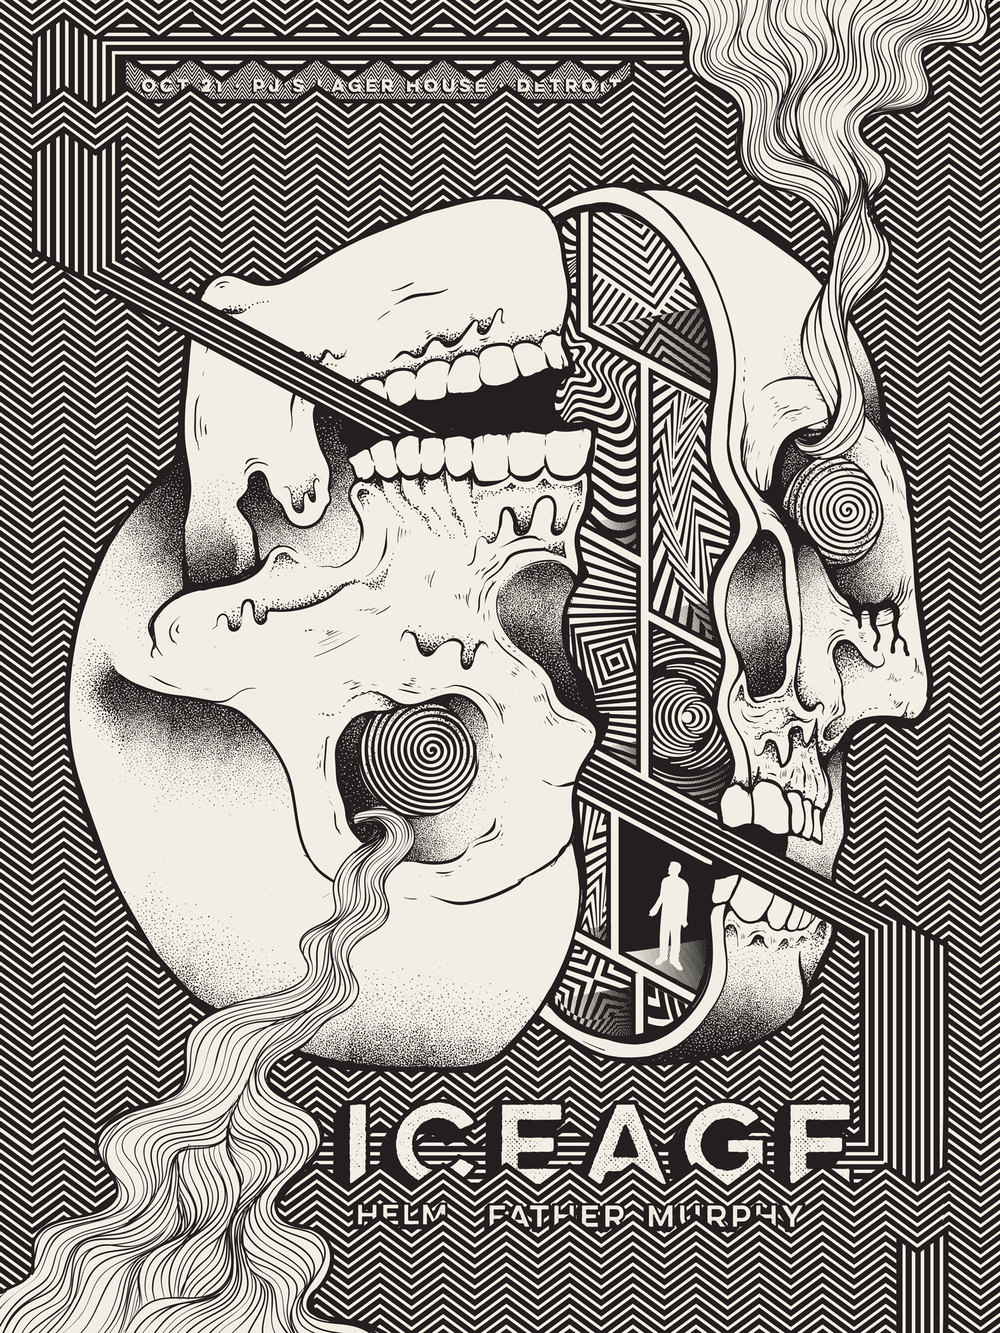 iceage_final_art.jpg